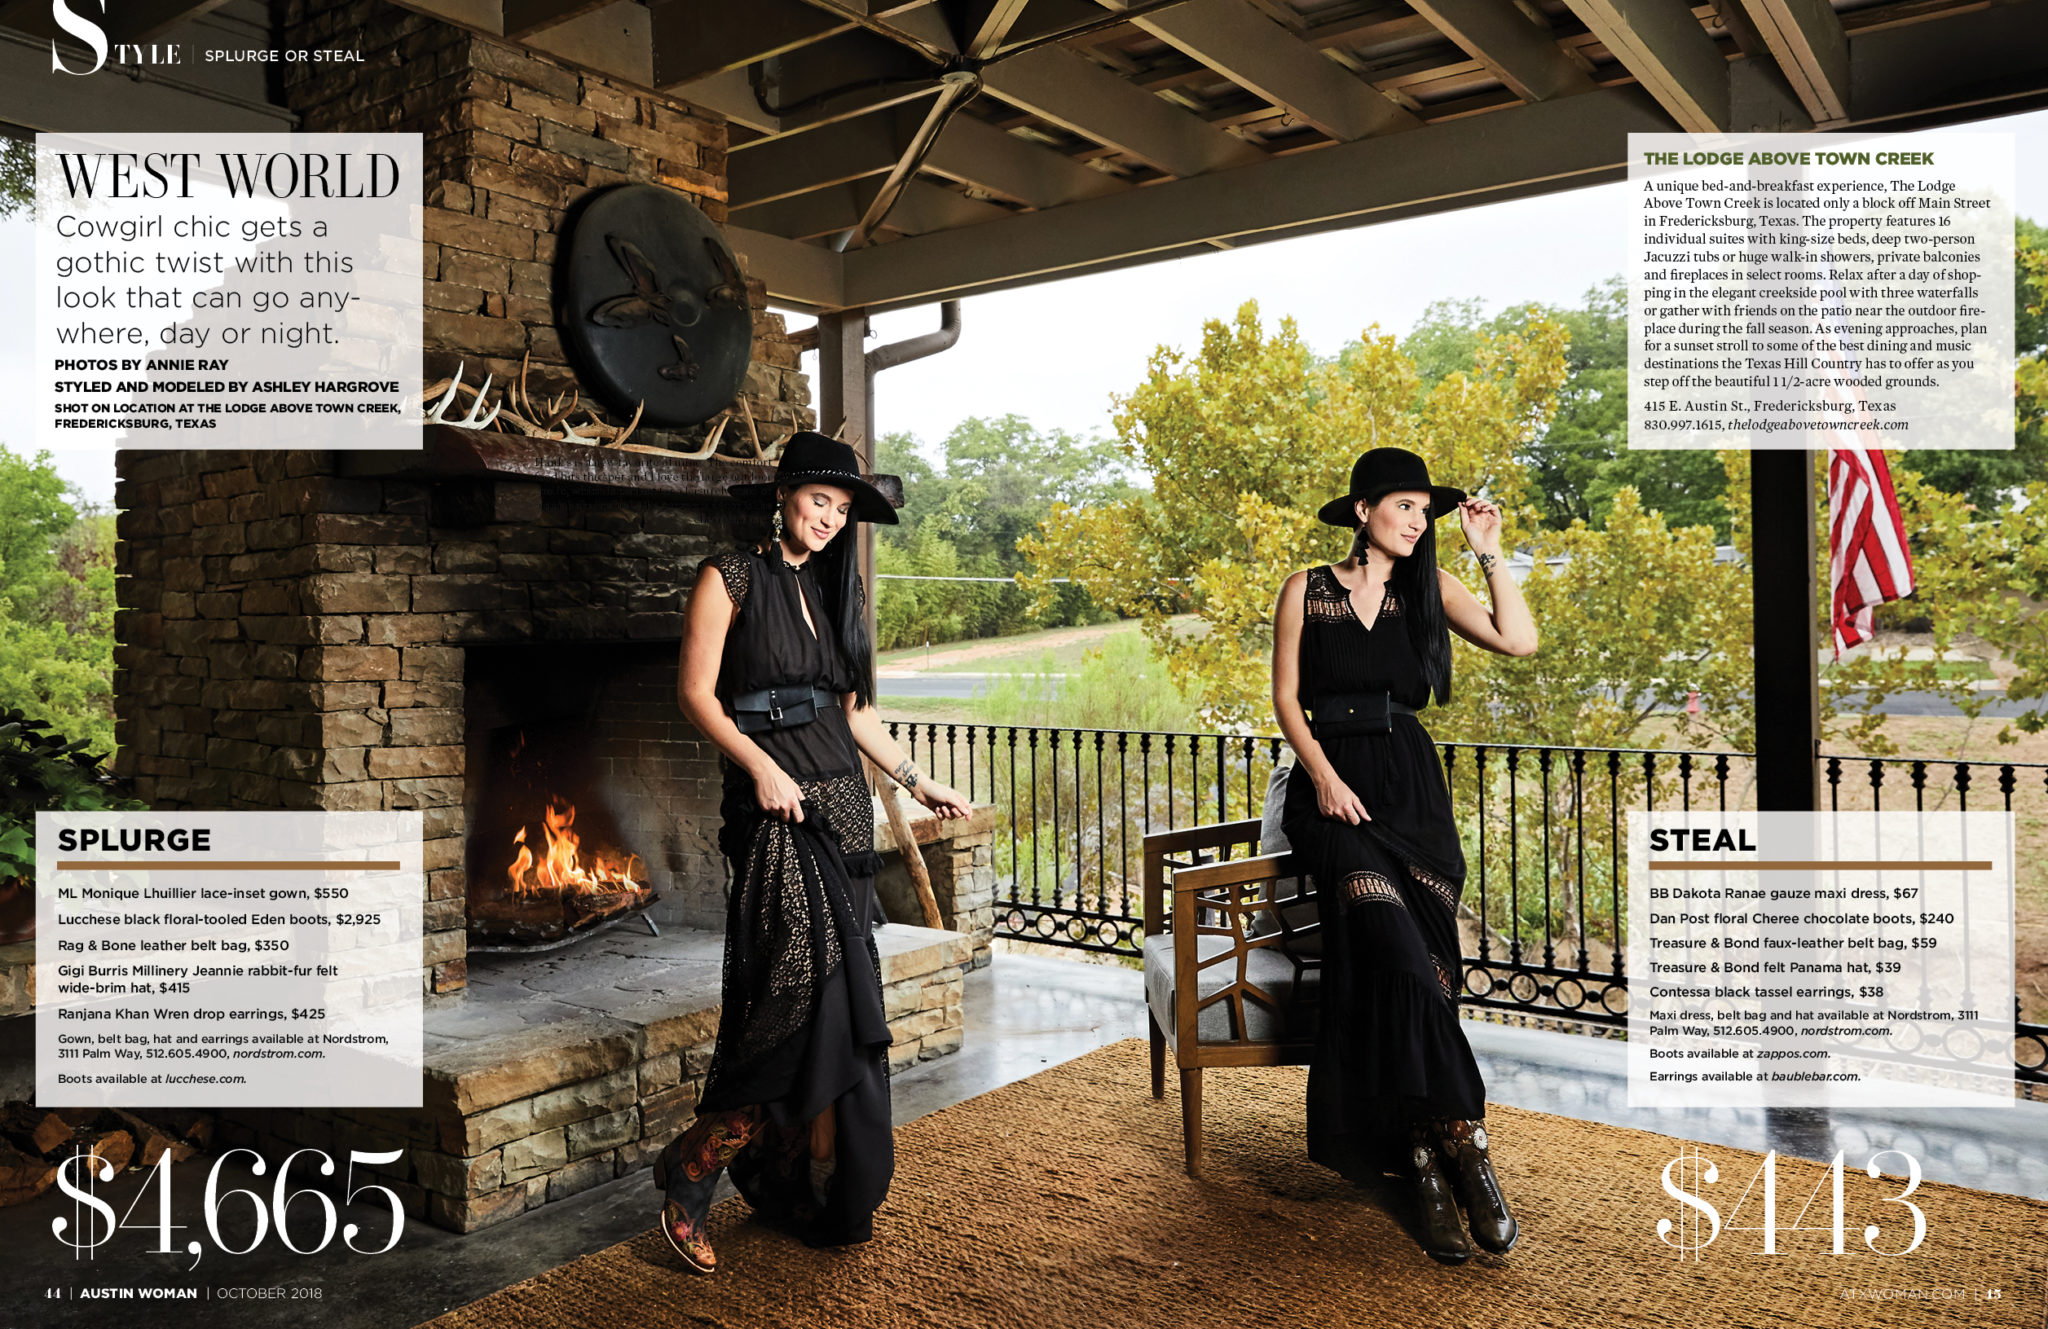 DTKAustin shares Splurge or Steal black maxi dress options that look like they came right out of West World. | high end style | affordable maxi dress | Little Black Dress | Black Maxi Dress | monique lhuillier || DTK Austin #splurgeorsteal #fashion #style #womensoutfits #gamedaylooks #dtkaustin - {Splurge or Steal - Black Lace Maxi Dress} featured by popular Austin fashion blogger Dressed to Kill